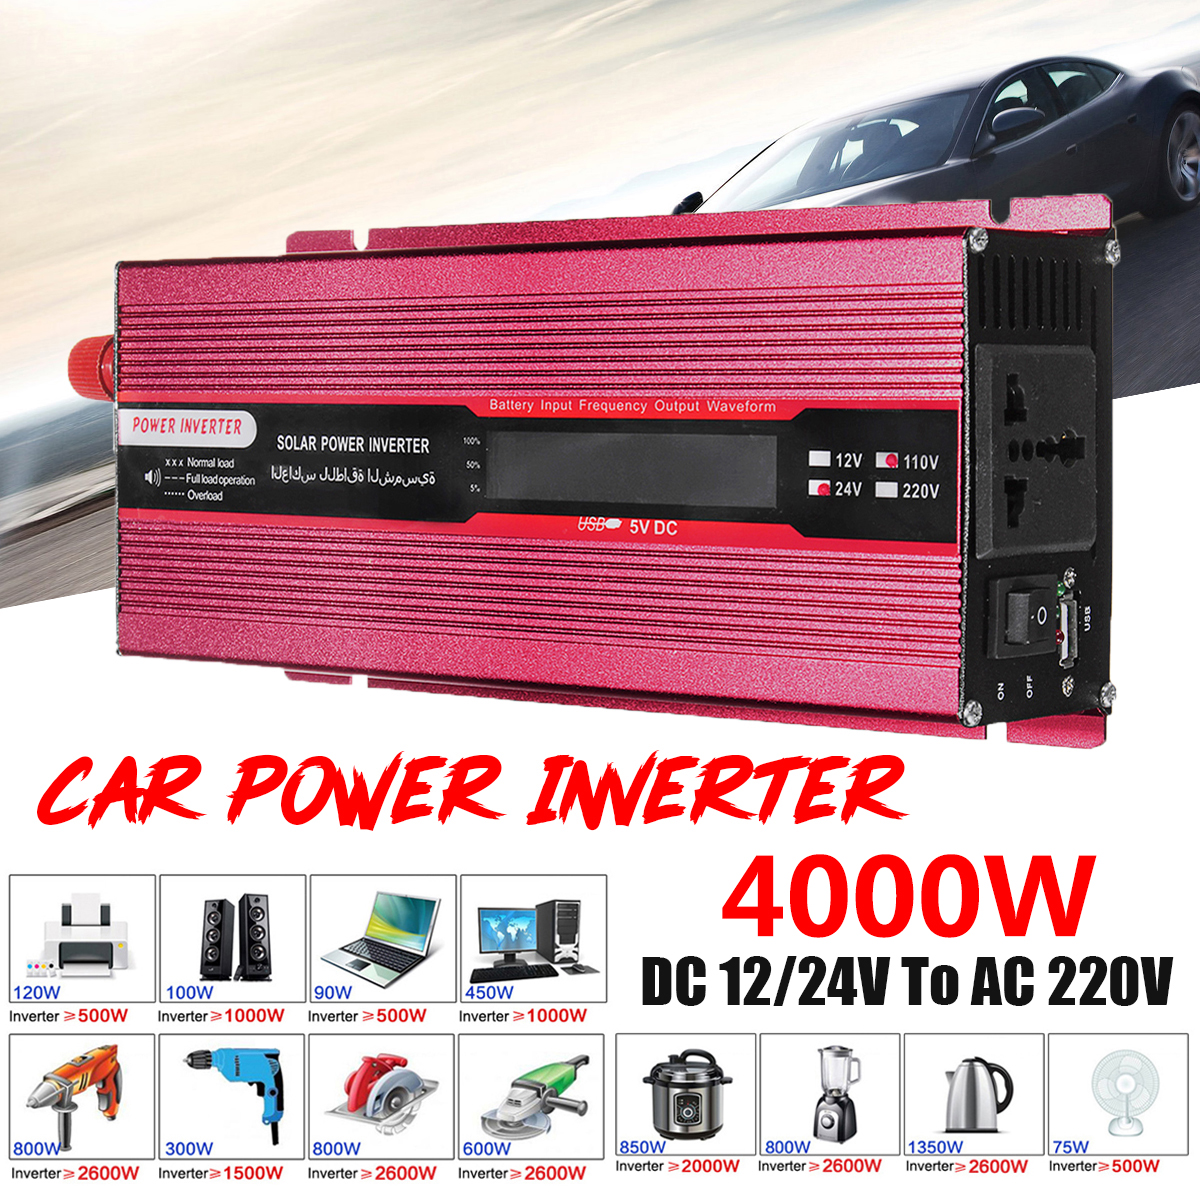 Efficiency Car Power Inverter PEAK 4000W 12/24V To AC 220/110V USB Modified Sine Wave Converter Transformer Voltage Display владимир дэс цена договора